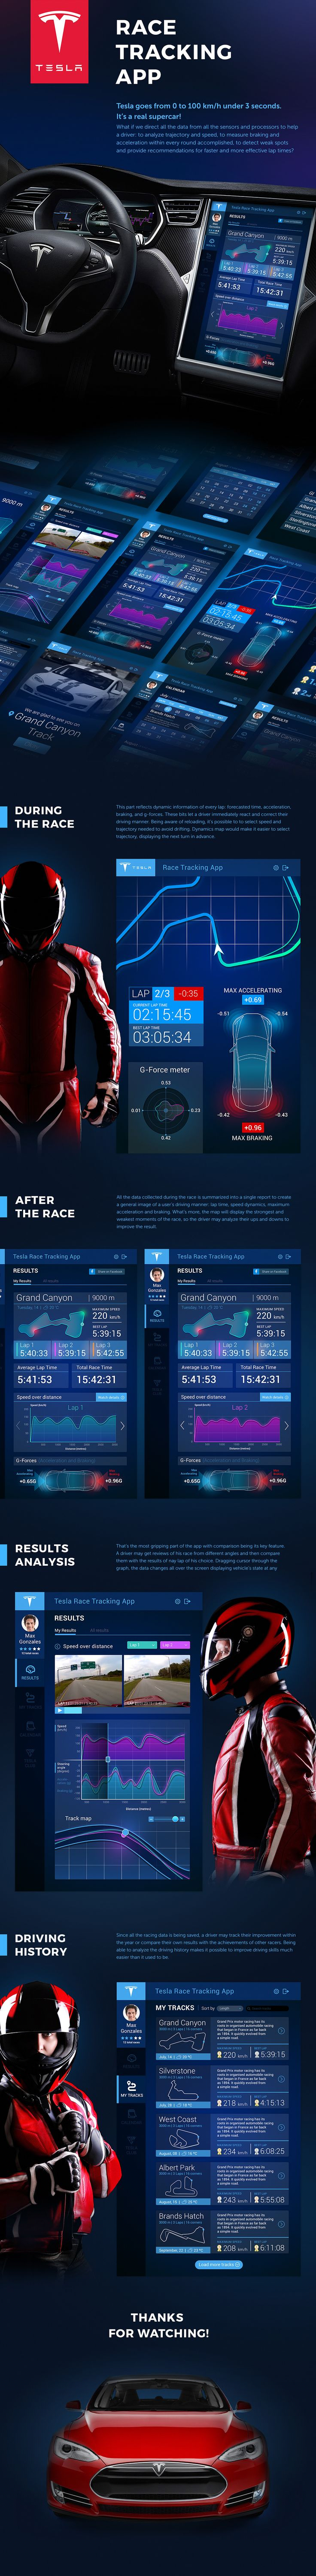 This is a concept of application for Tesla drivers who love speed races.It will help drivers to analyze trajectory and speed, to measure braking and acceleration within every round accomplished, to detect weak spots and provide recommendations for faster…